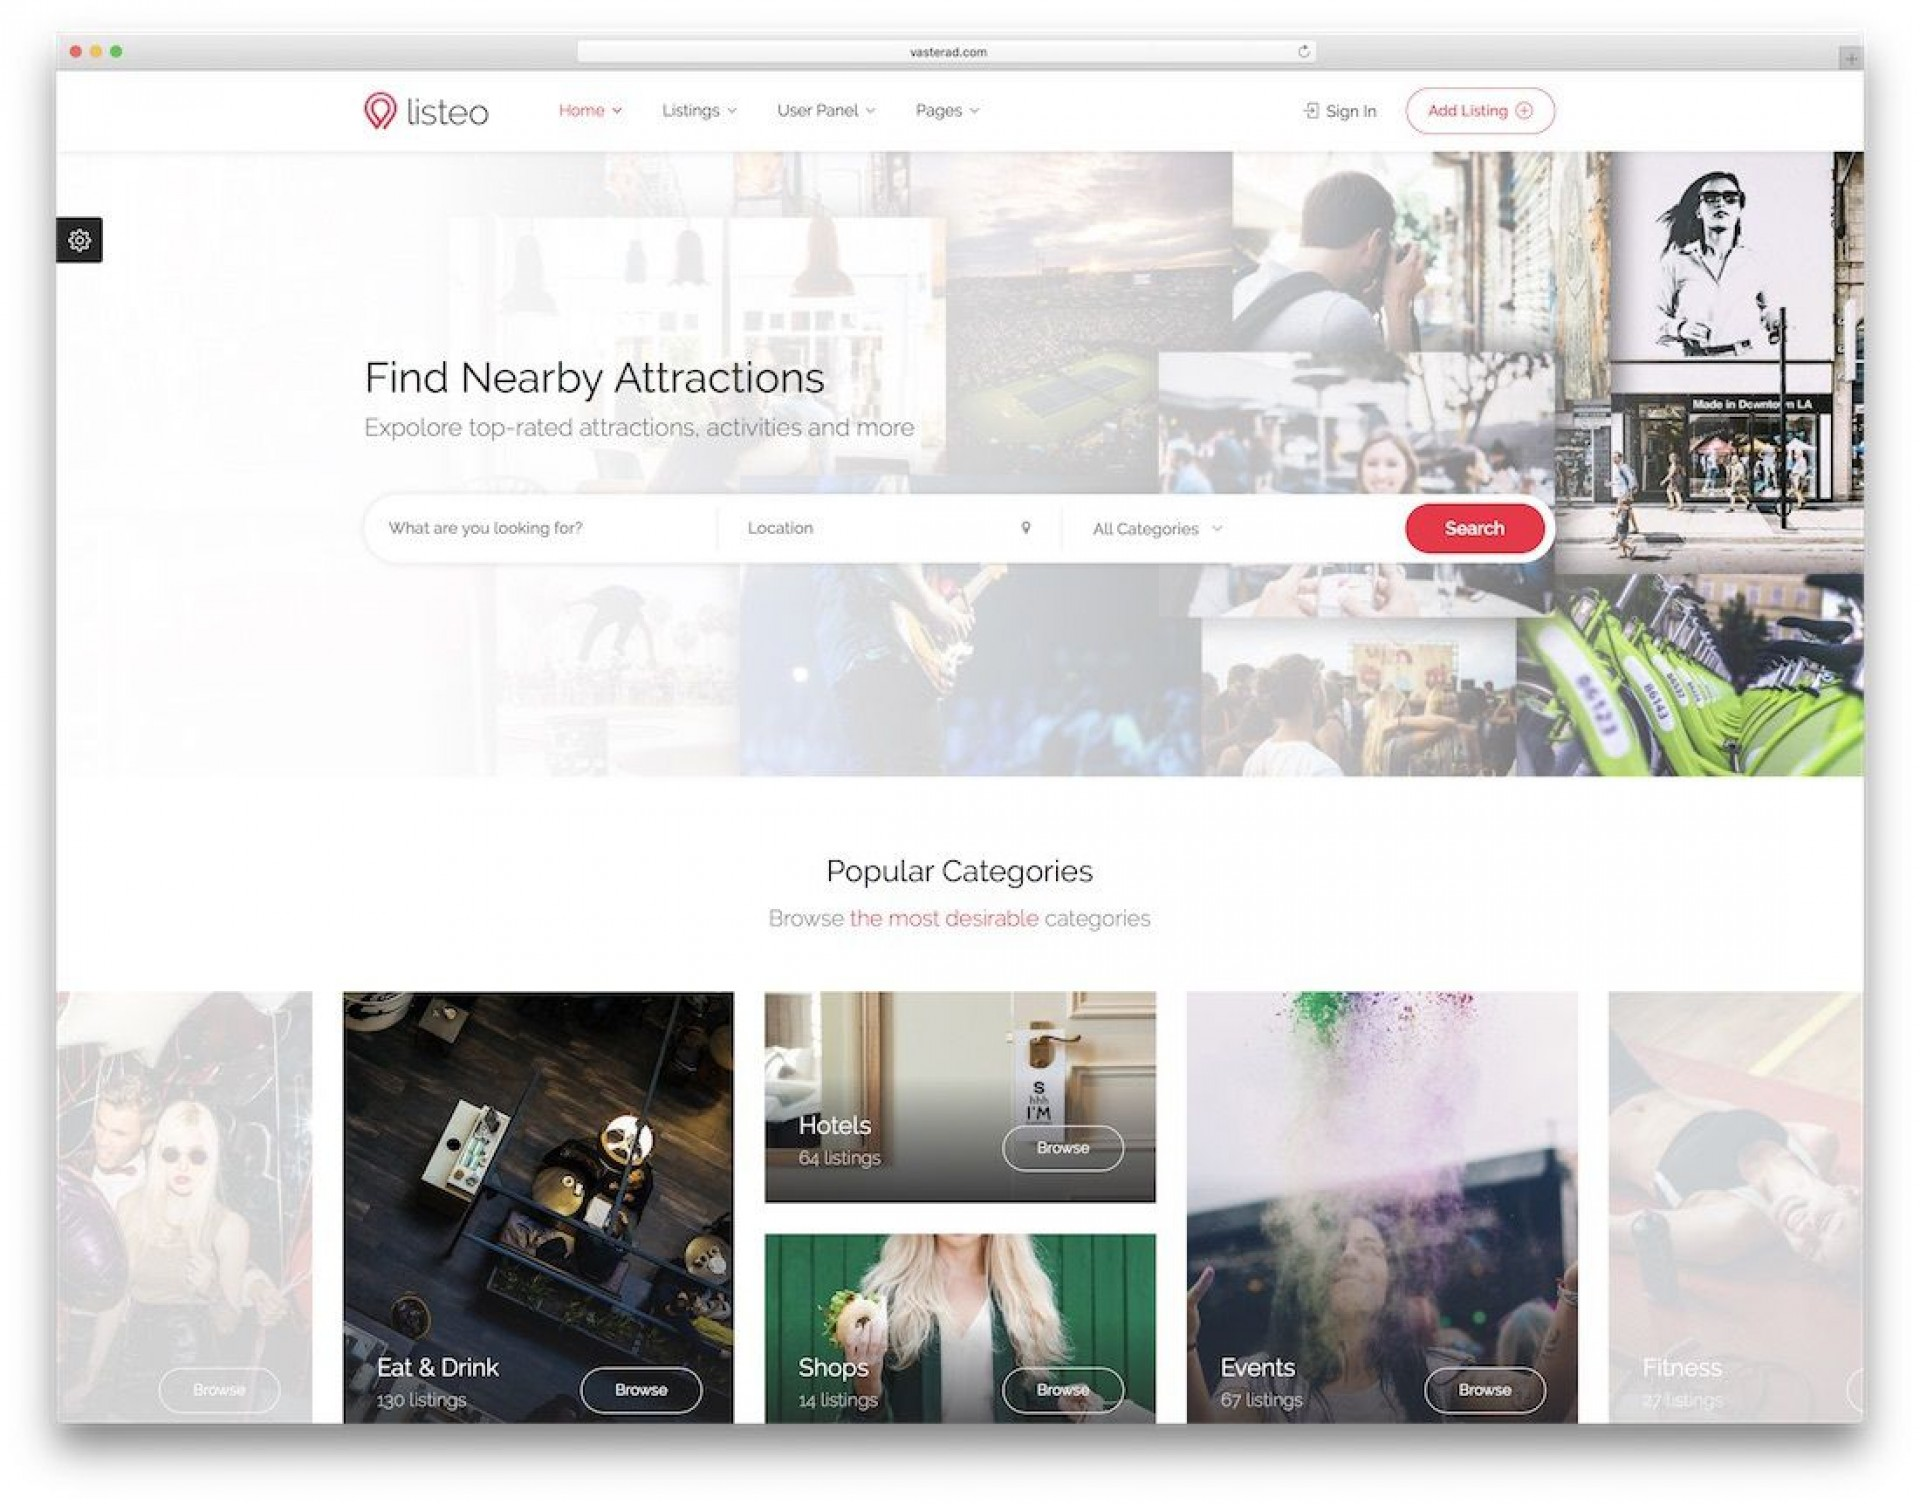 003 Stirring Mobile Friendly Web Template Photo  Templates Free Page1920